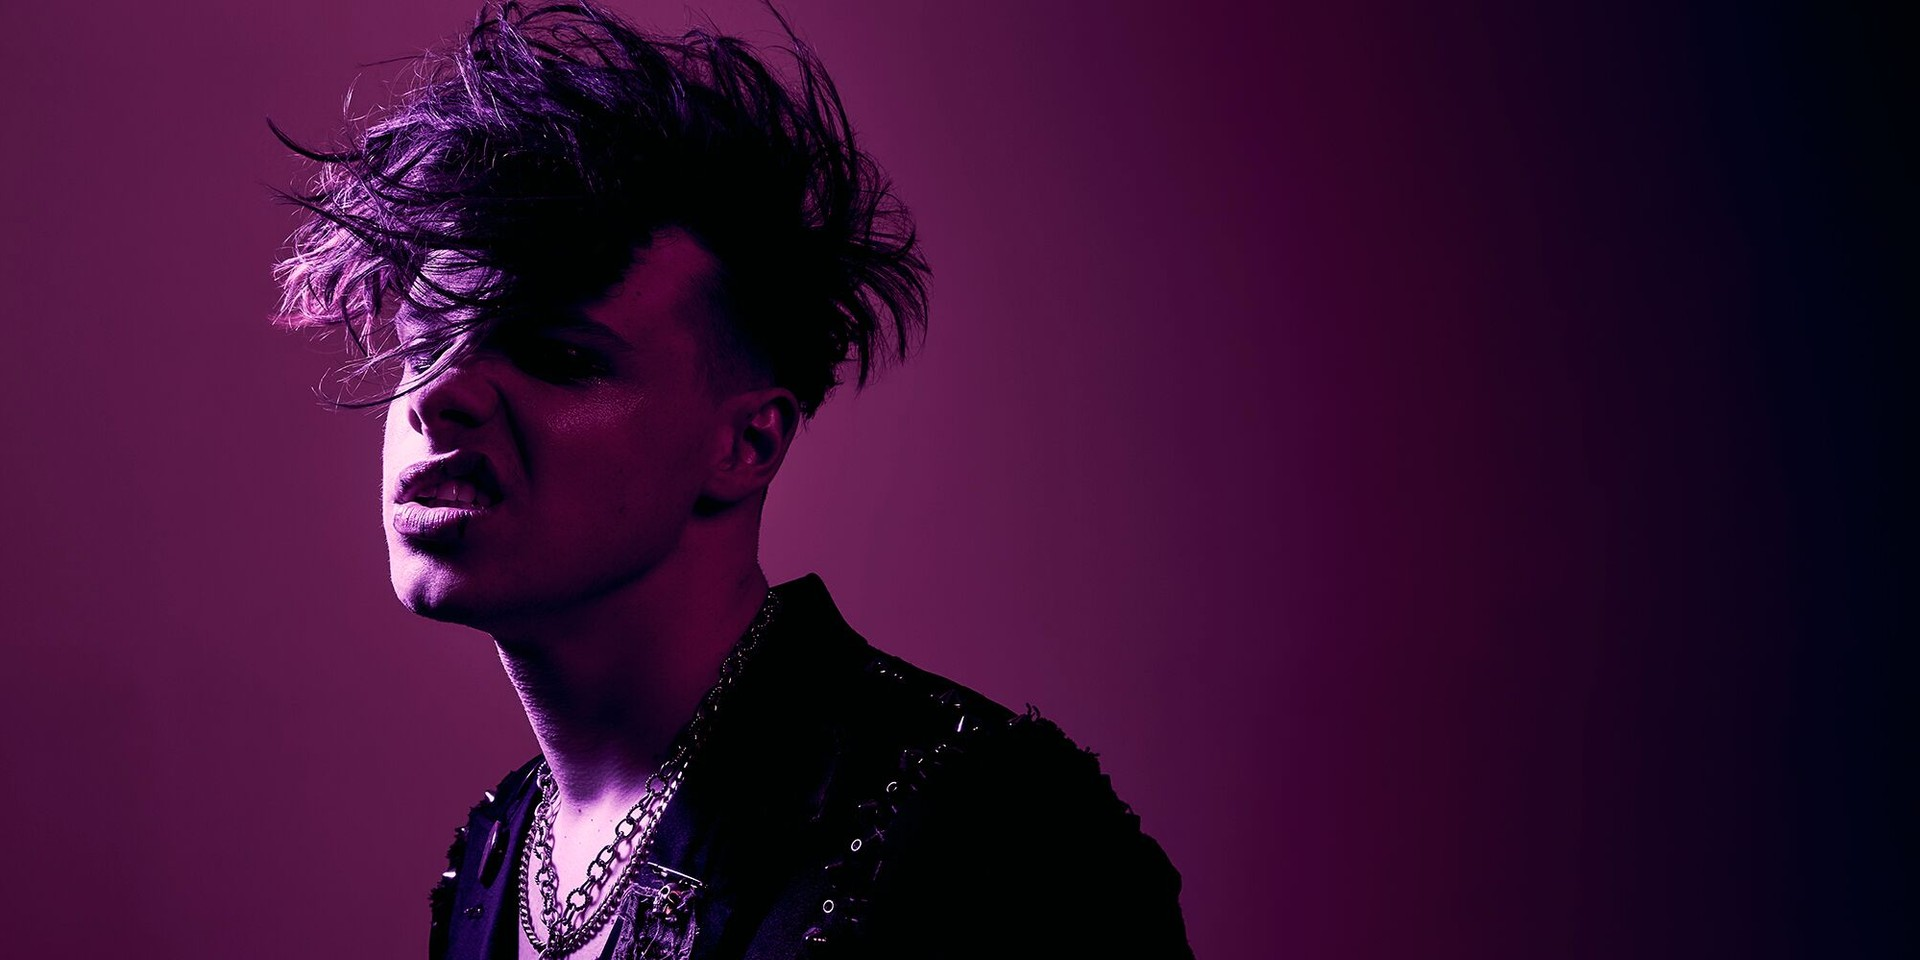 YUNGBLUD will perform in Singapore in March 2020